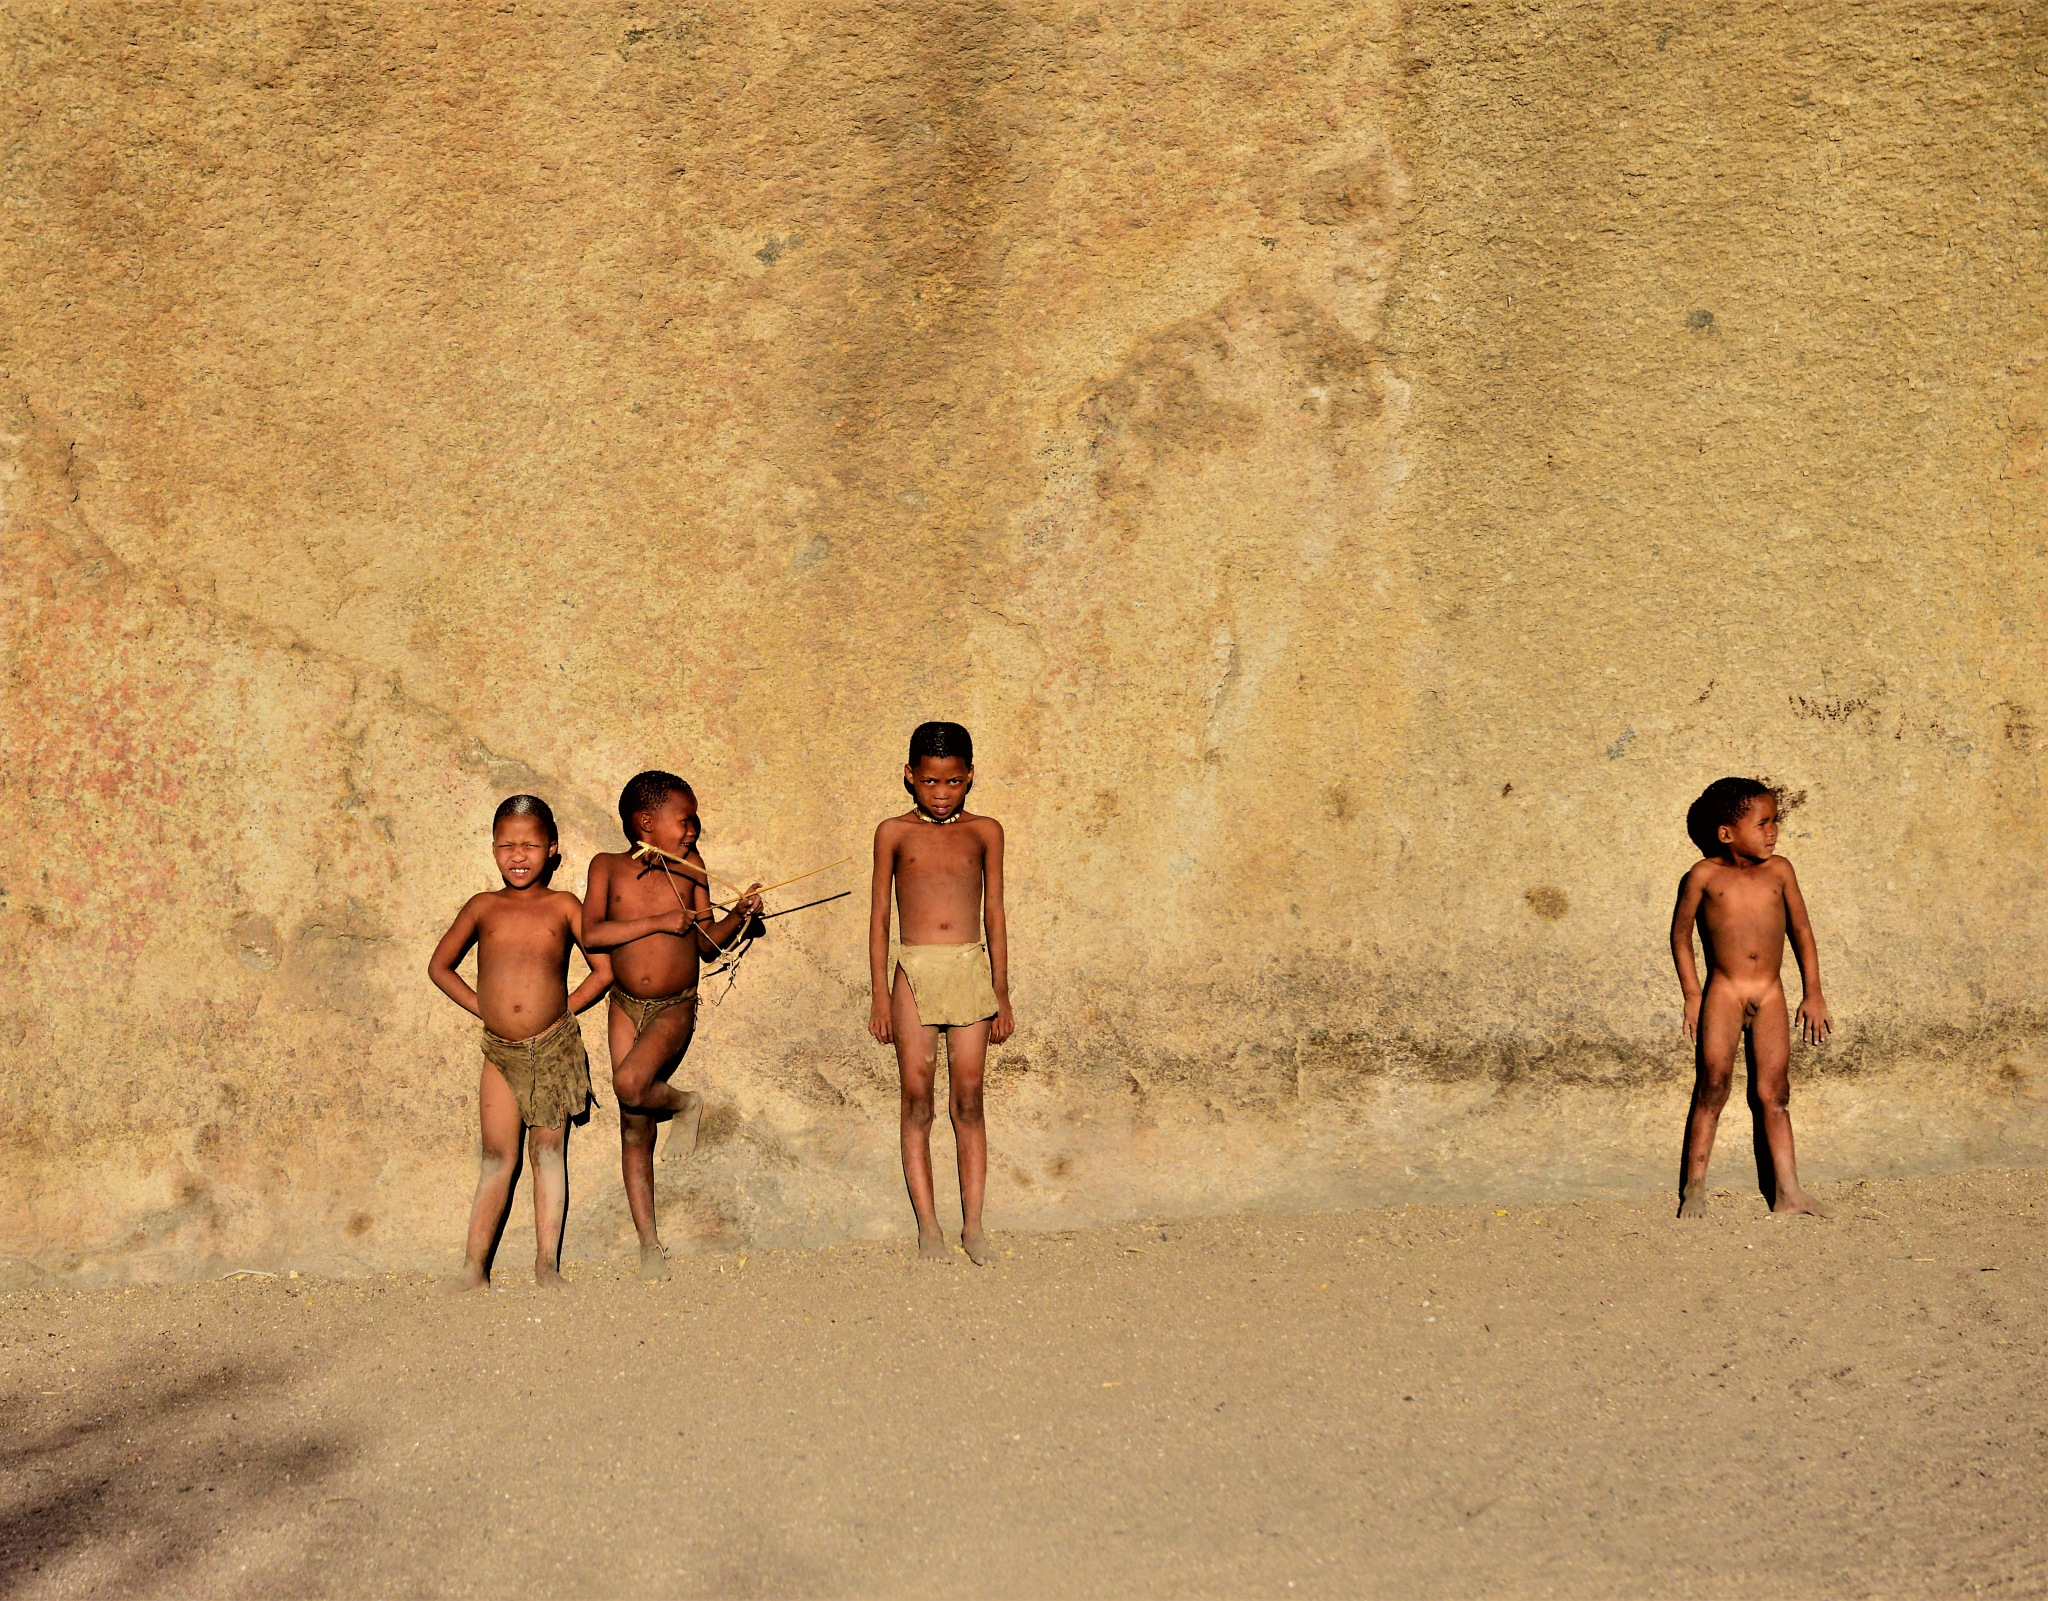 4 Ju/'Hoansi-San boys at play by Connie M Van Cleve